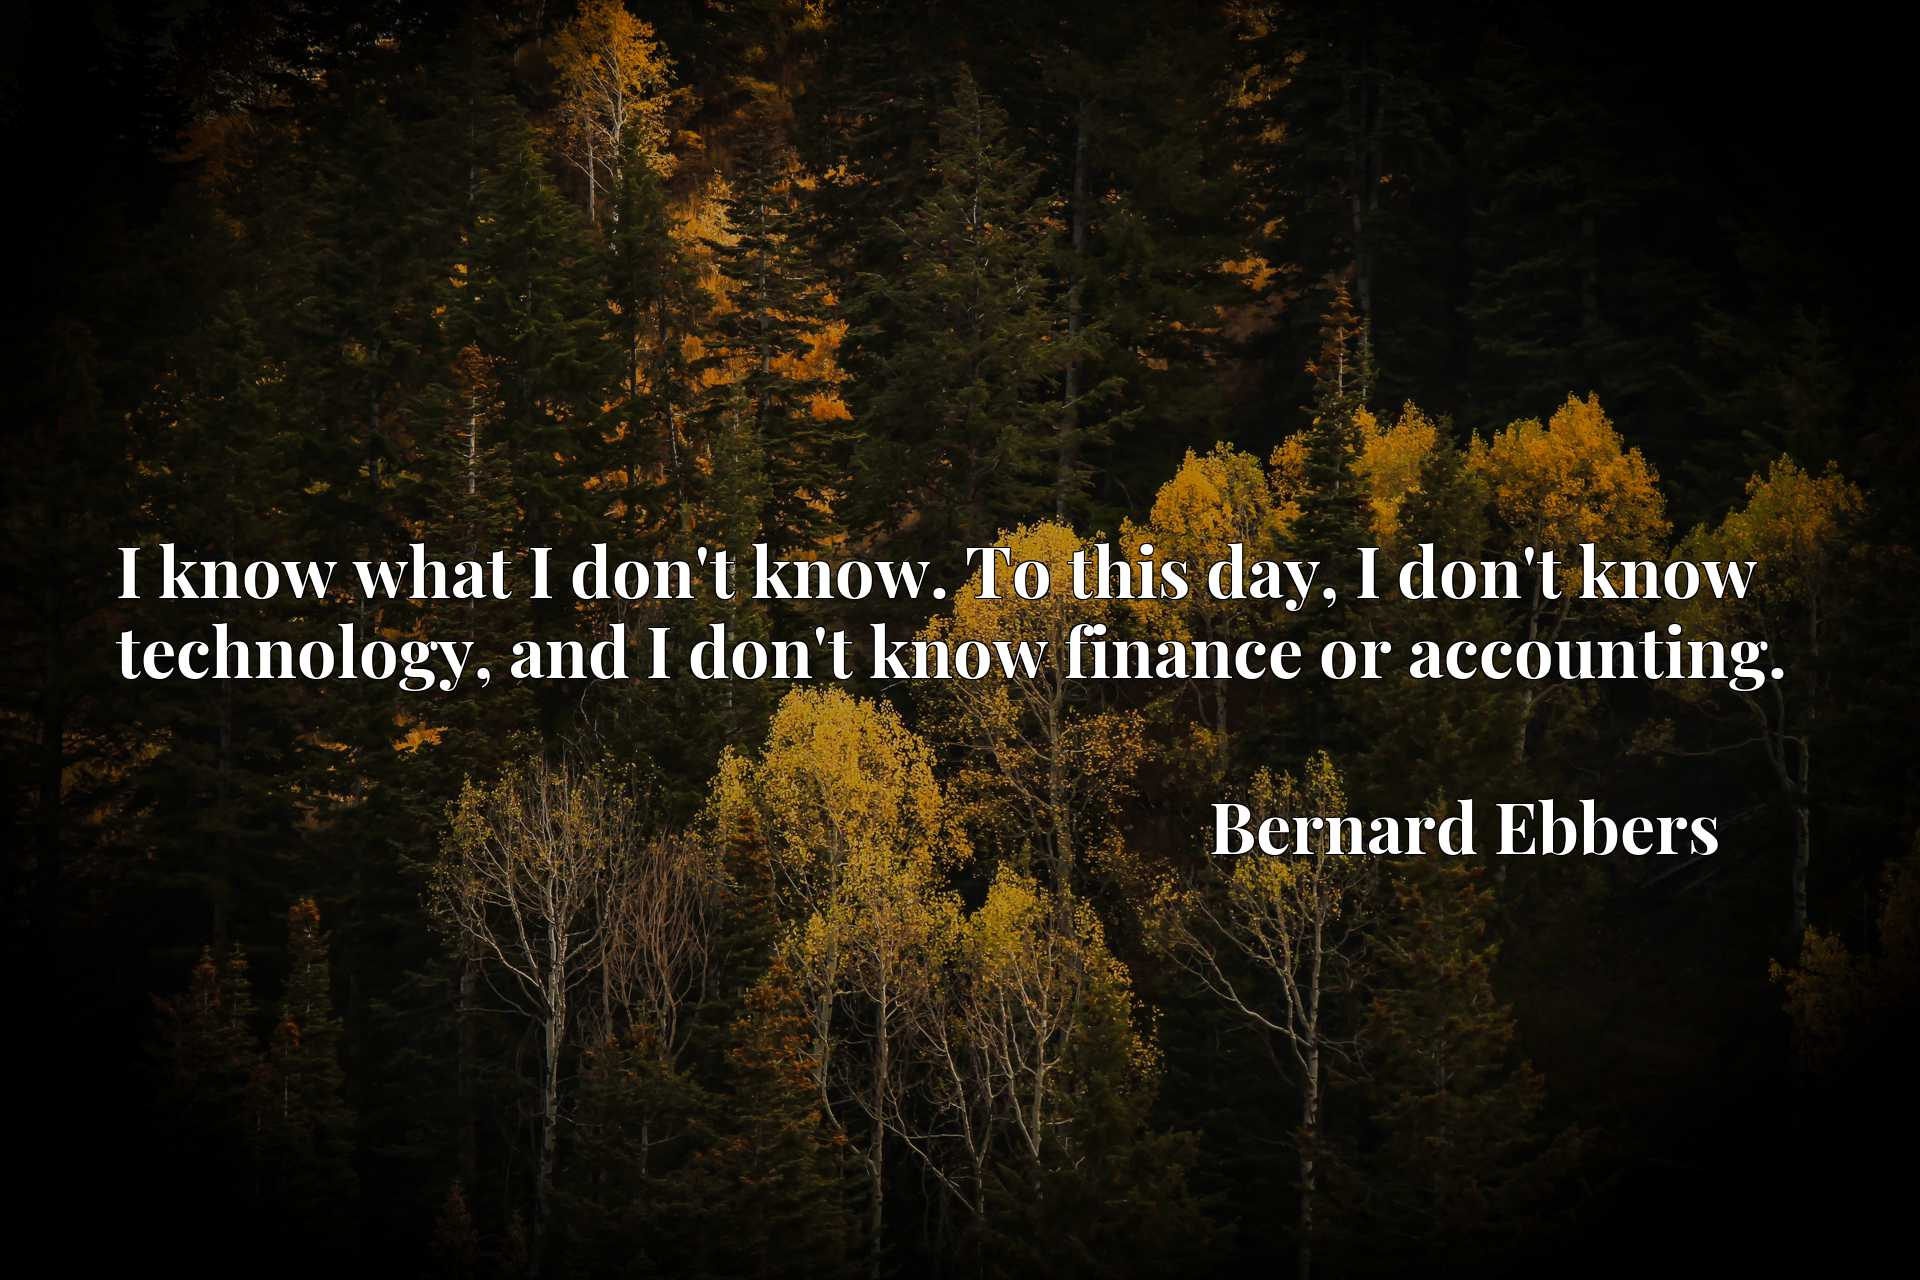 I know what I don't know. To this day, I don't know technology, and I don't know finance or accounting.